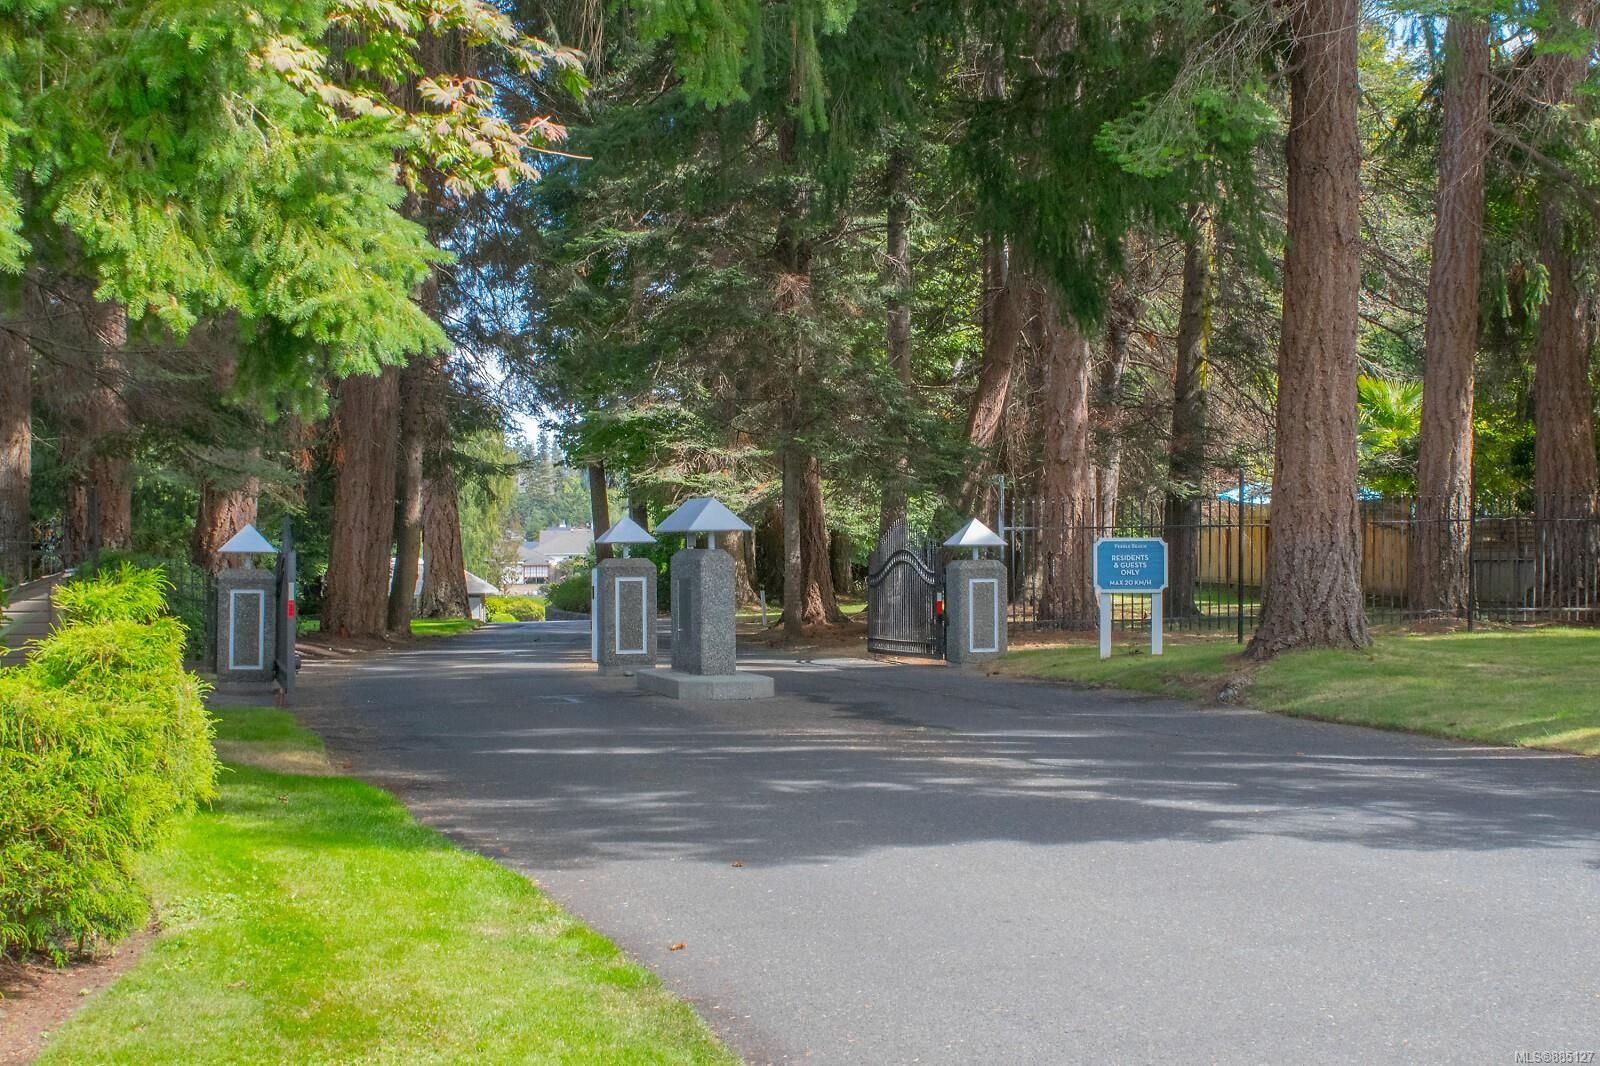 Photo 17: Photos: 26 529 Johnstone Rd in : PQ French Creek Row/Townhouse for sale (Parksville/Qualicum)  : MLS®# 885127